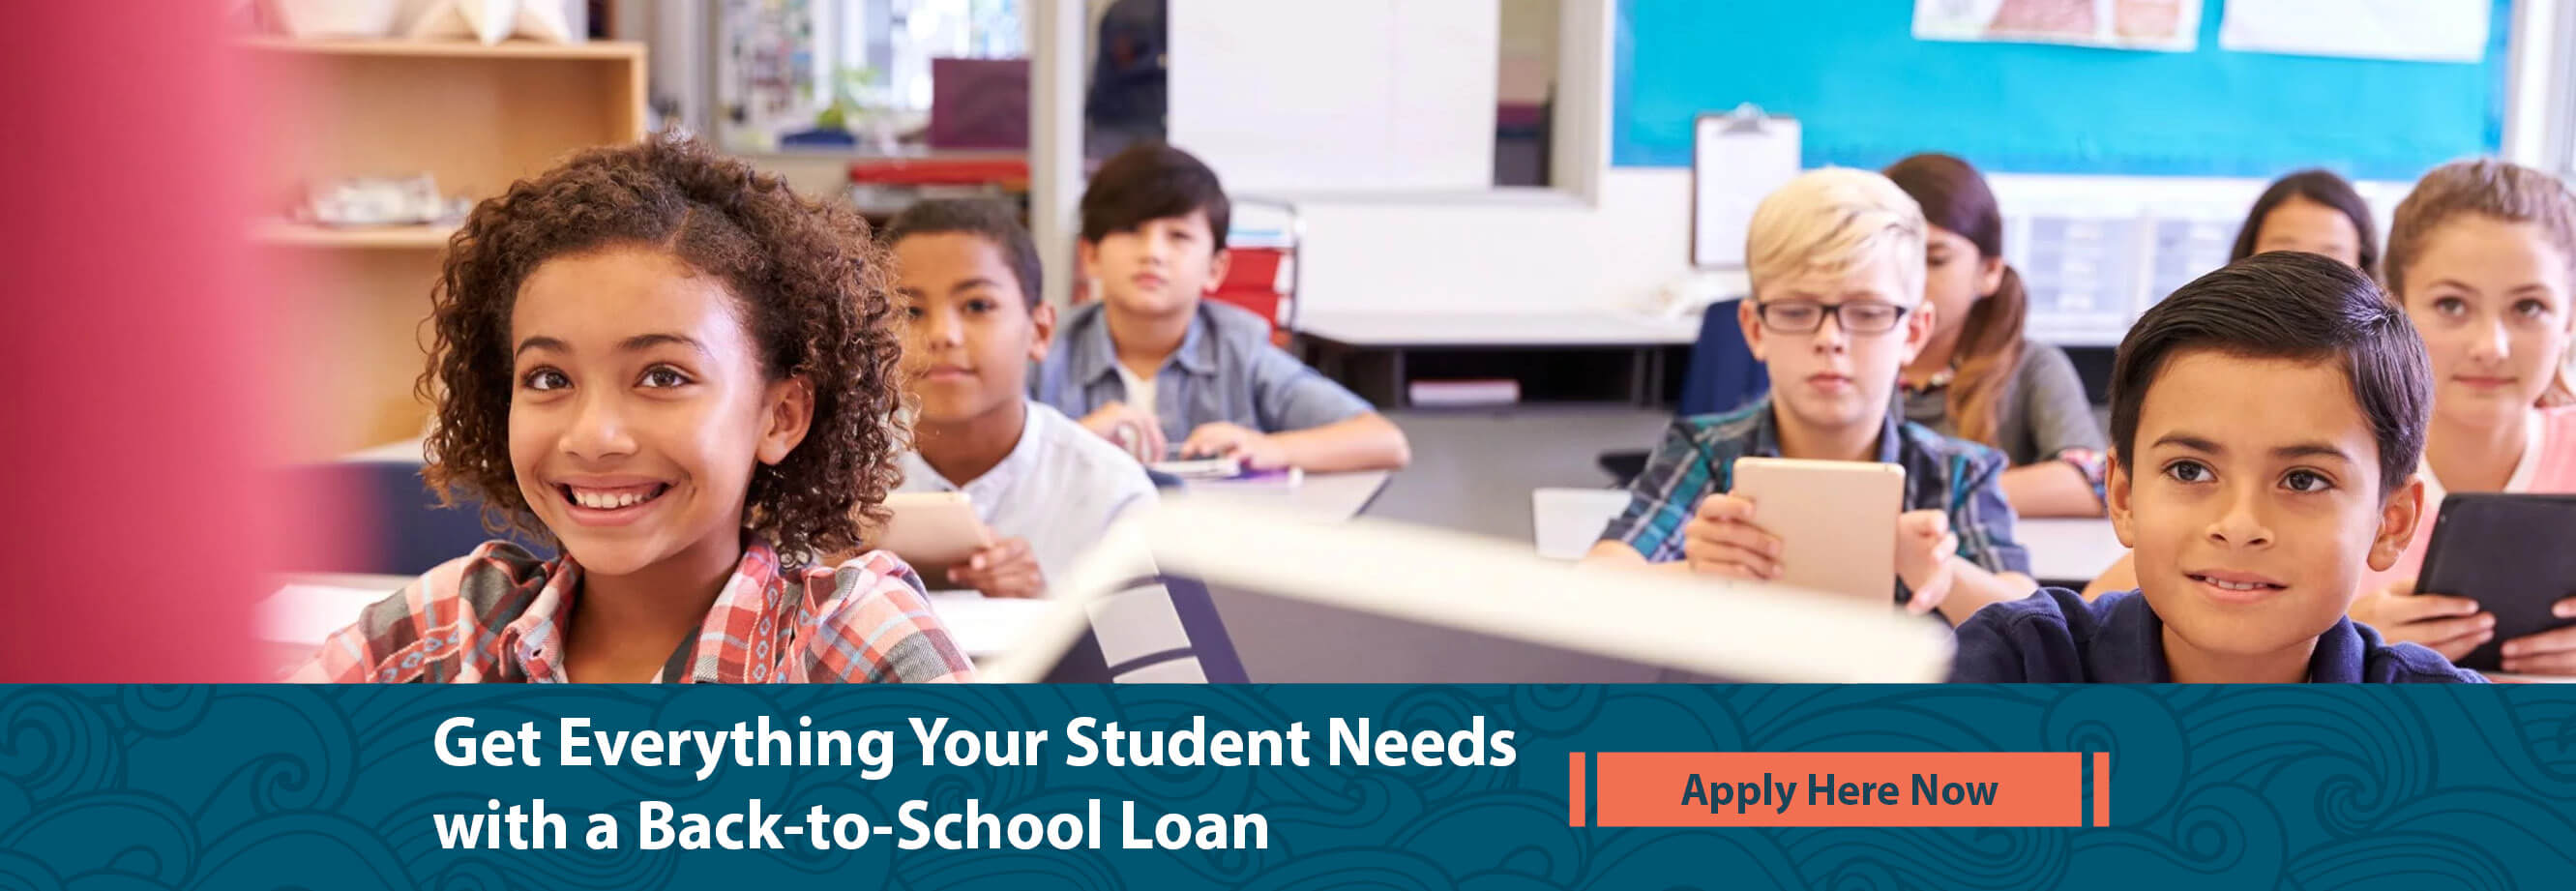 Get everything your student needs with our Back to School Loan. Apply here now